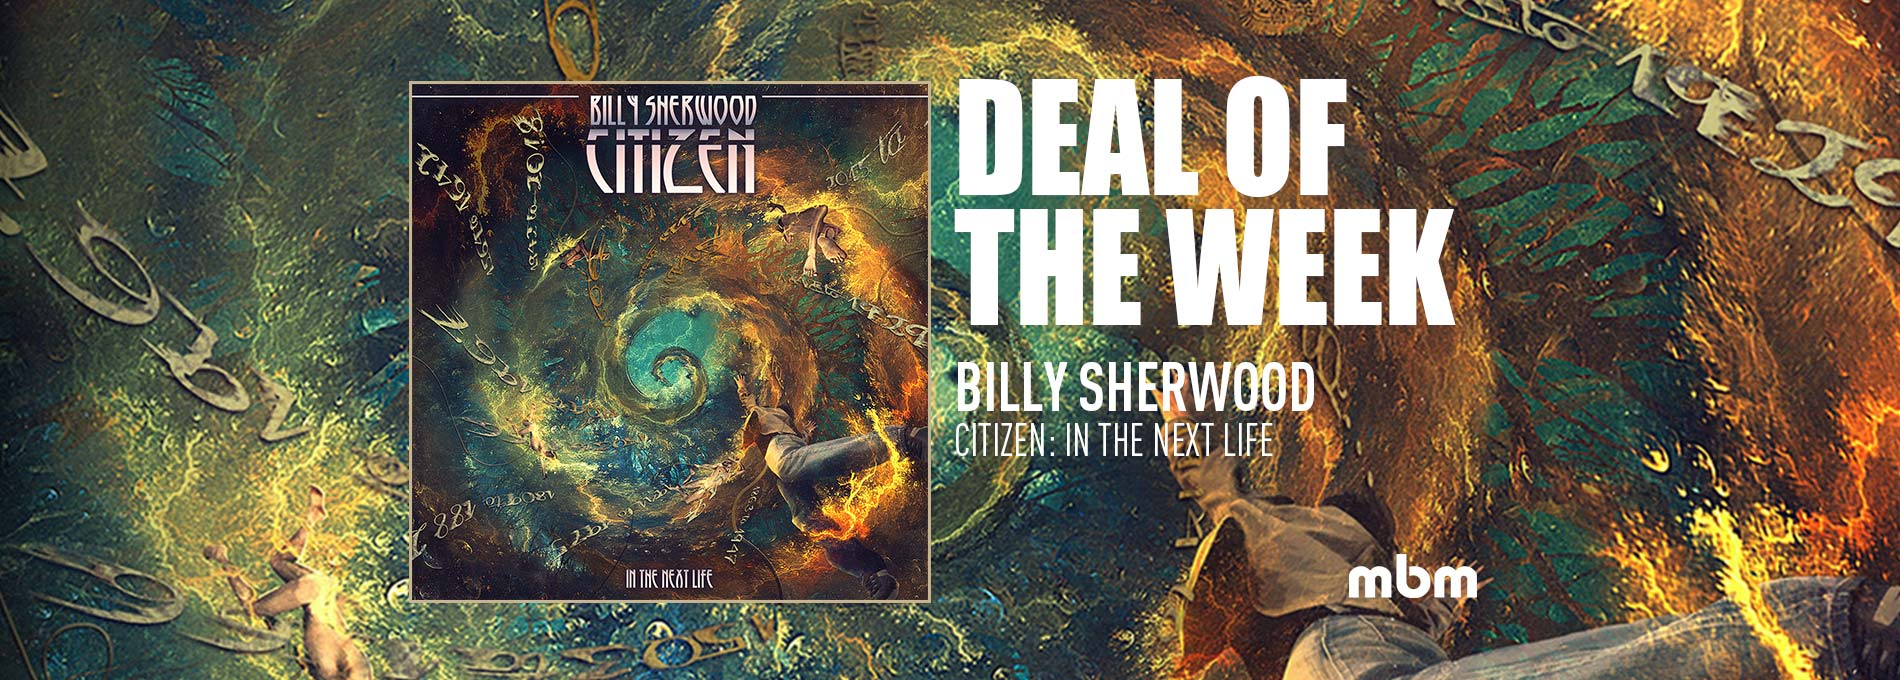 Deal Of The Week: SHERWOOD, BILLY - Citizen: In The Next Life